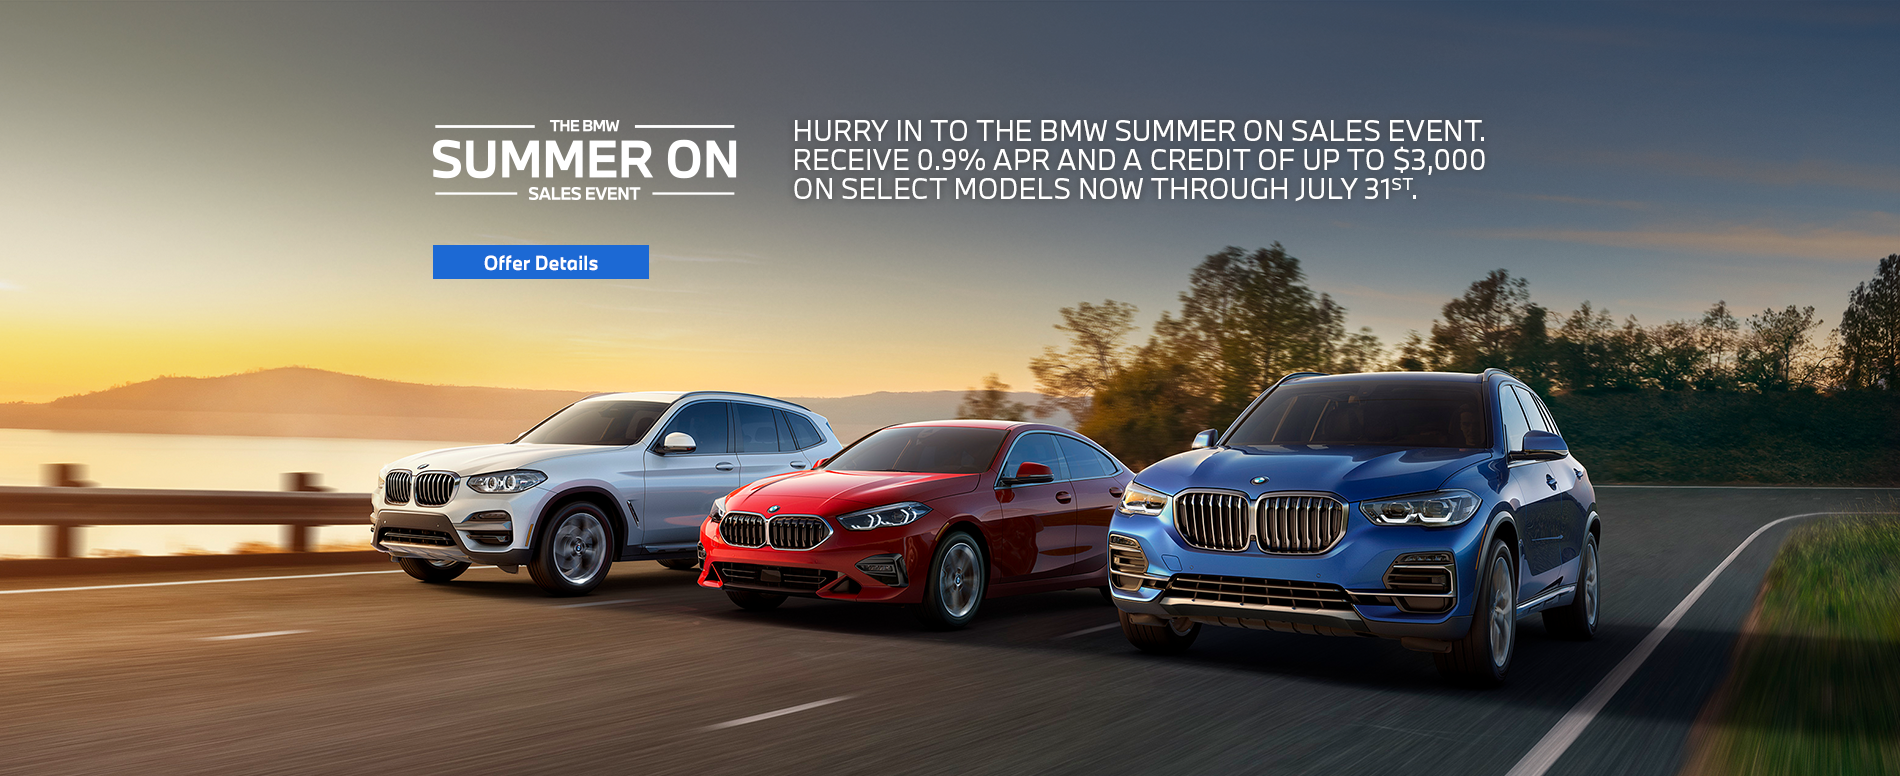 0.9% APR and $3,000 Credit